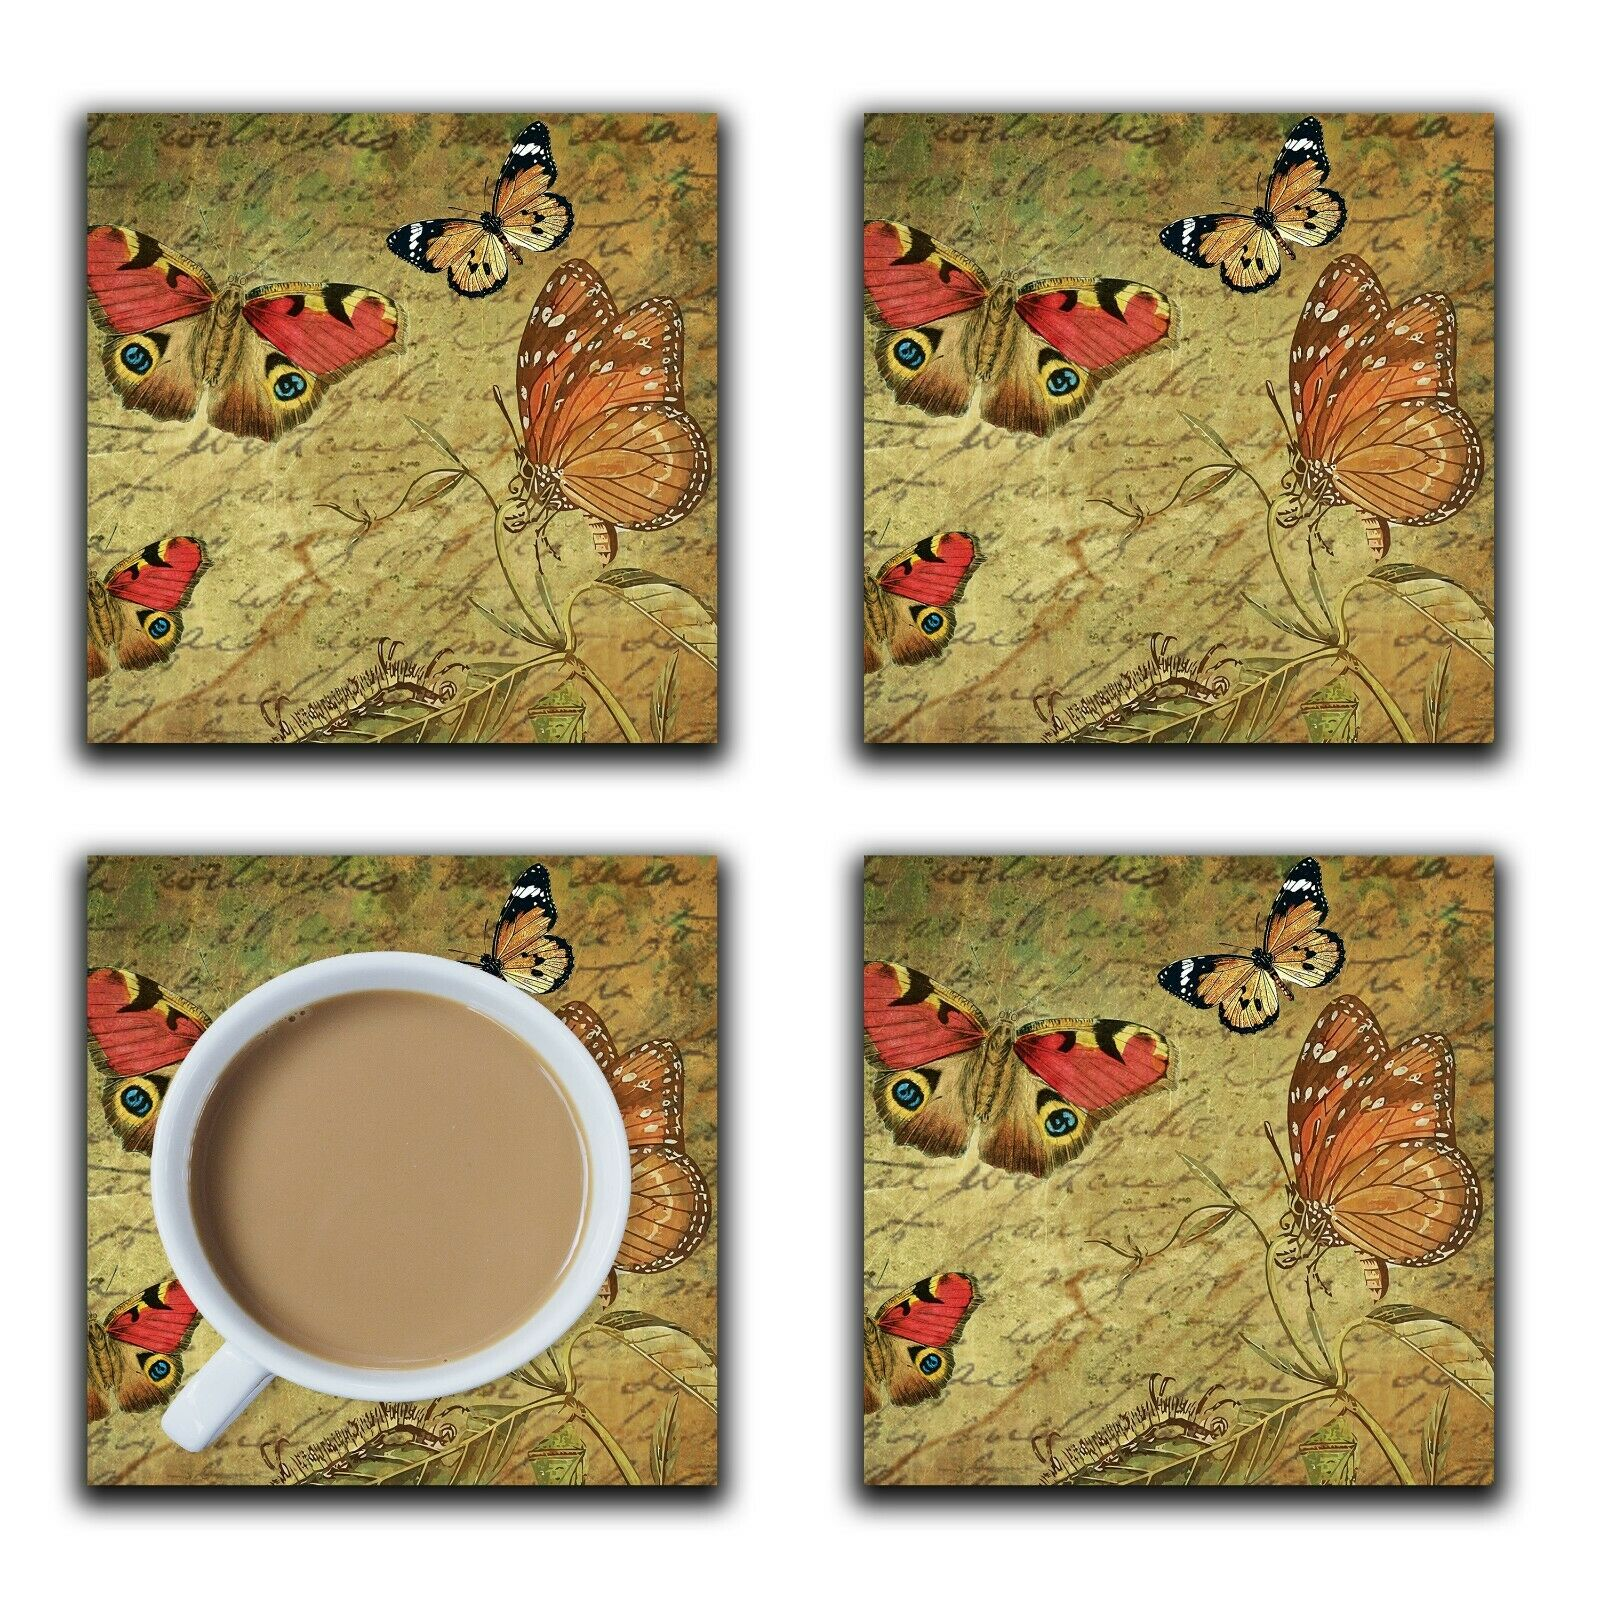 Embossi Printed Vintage Butterflies, wood or ceramic tile, set of 4 Coasters